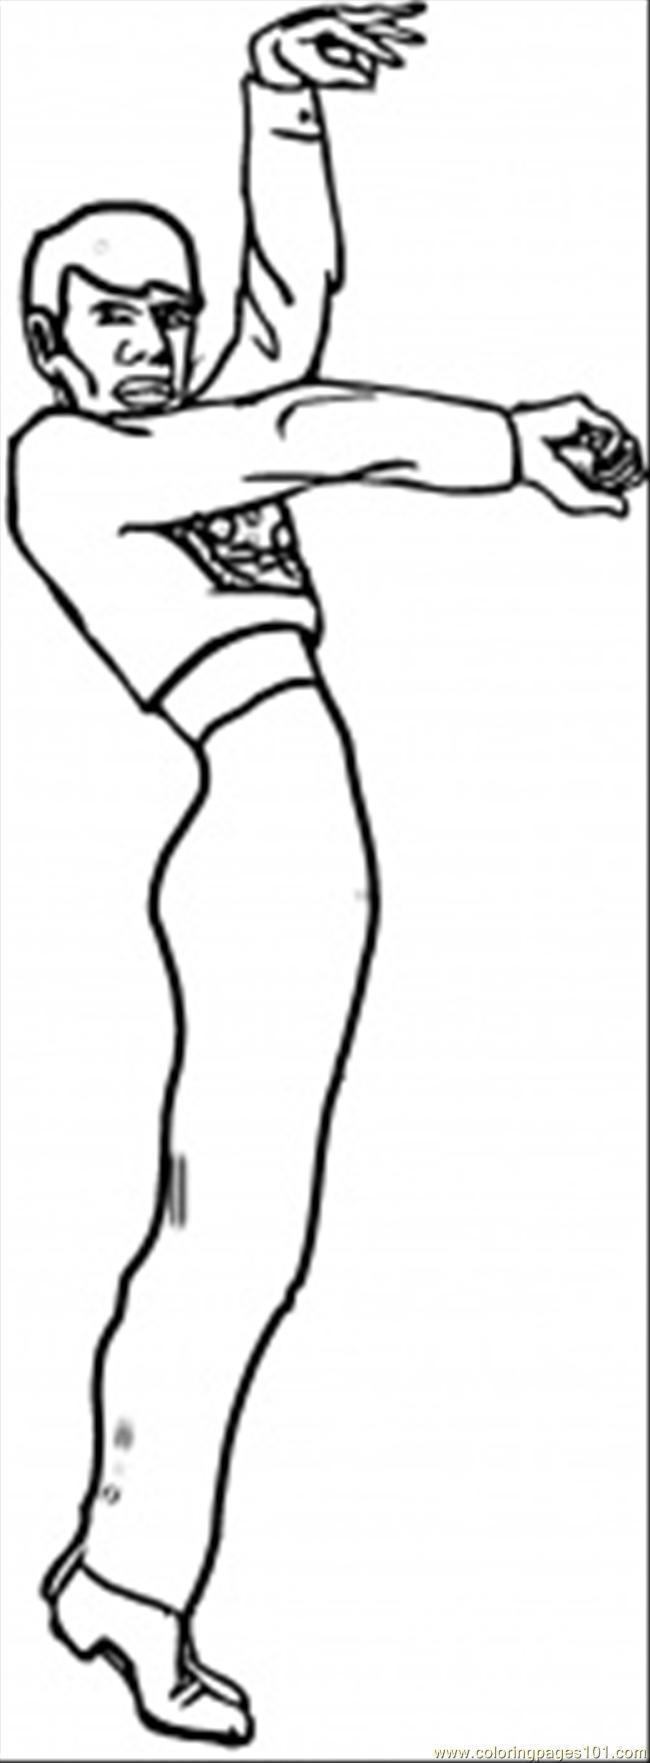 Coloring Pages Spanish Man Dancer